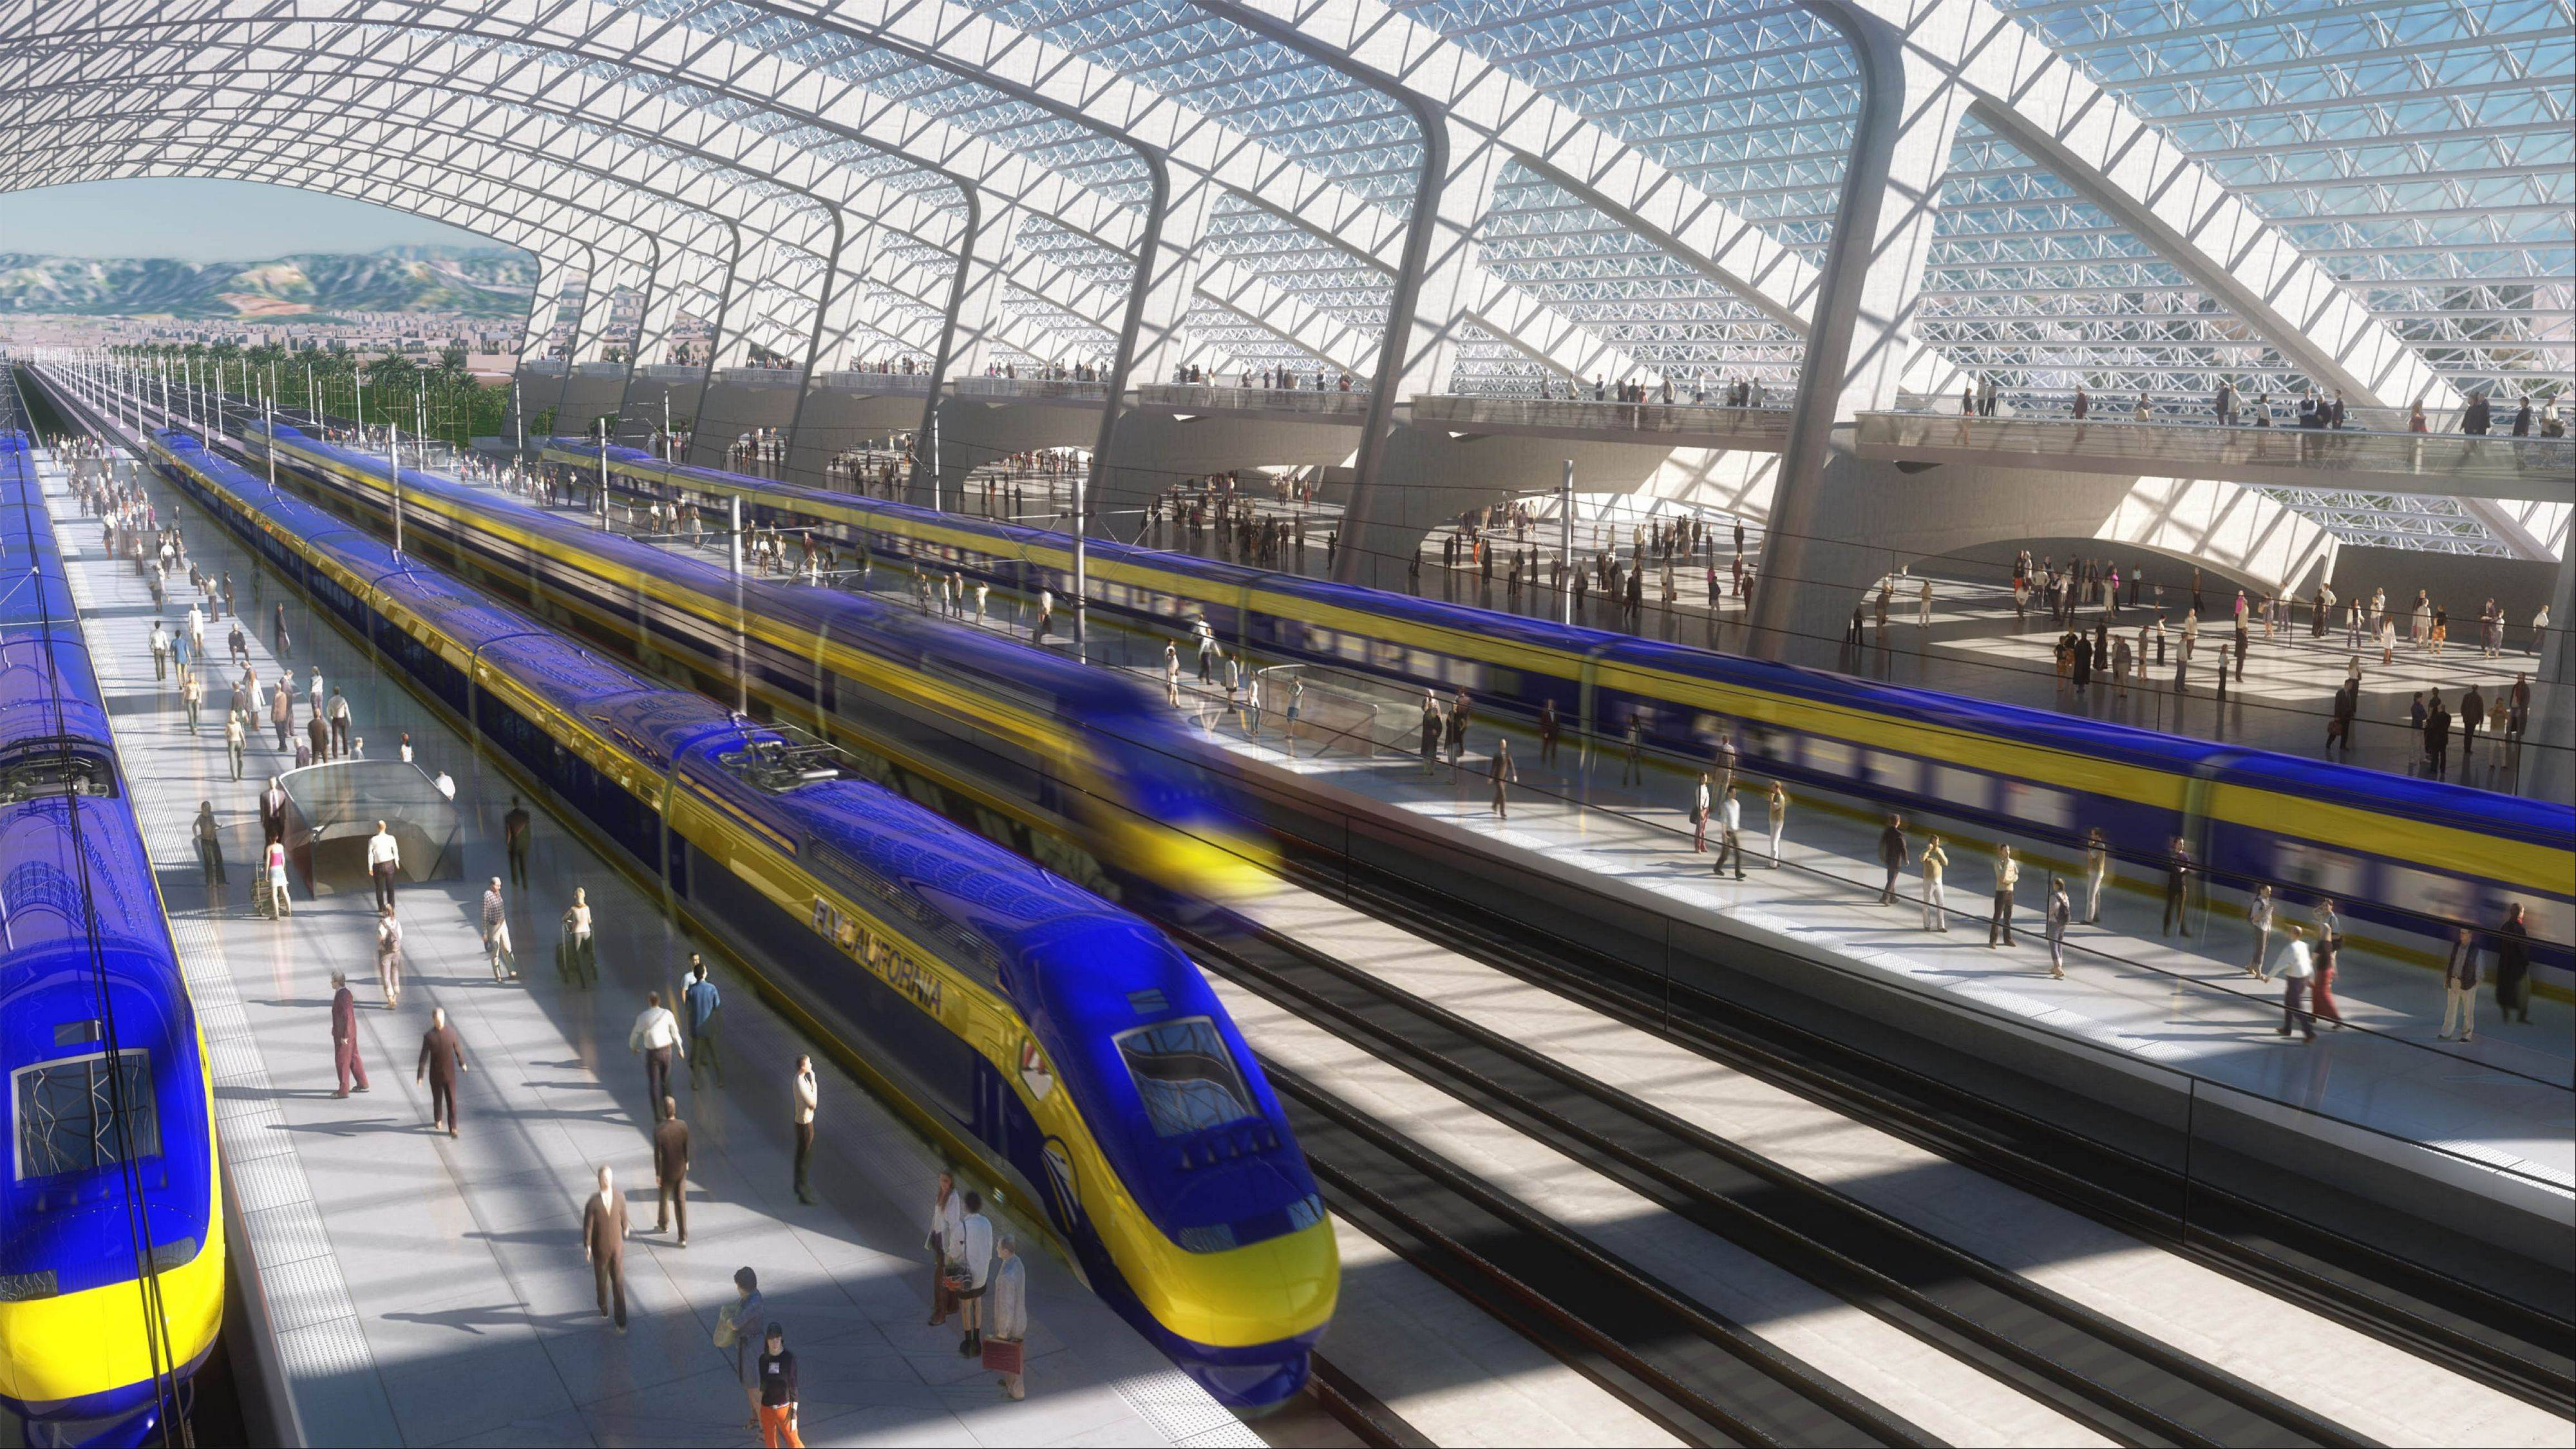 This is an artist�s rendering of a high-speed train station designed for California�s proposed system. Illinois high-speed rail efforts have taken a modest step forward recently with a new top speed of 110 mph over a short section of the Amtrak route between Chicago and St. Louis.